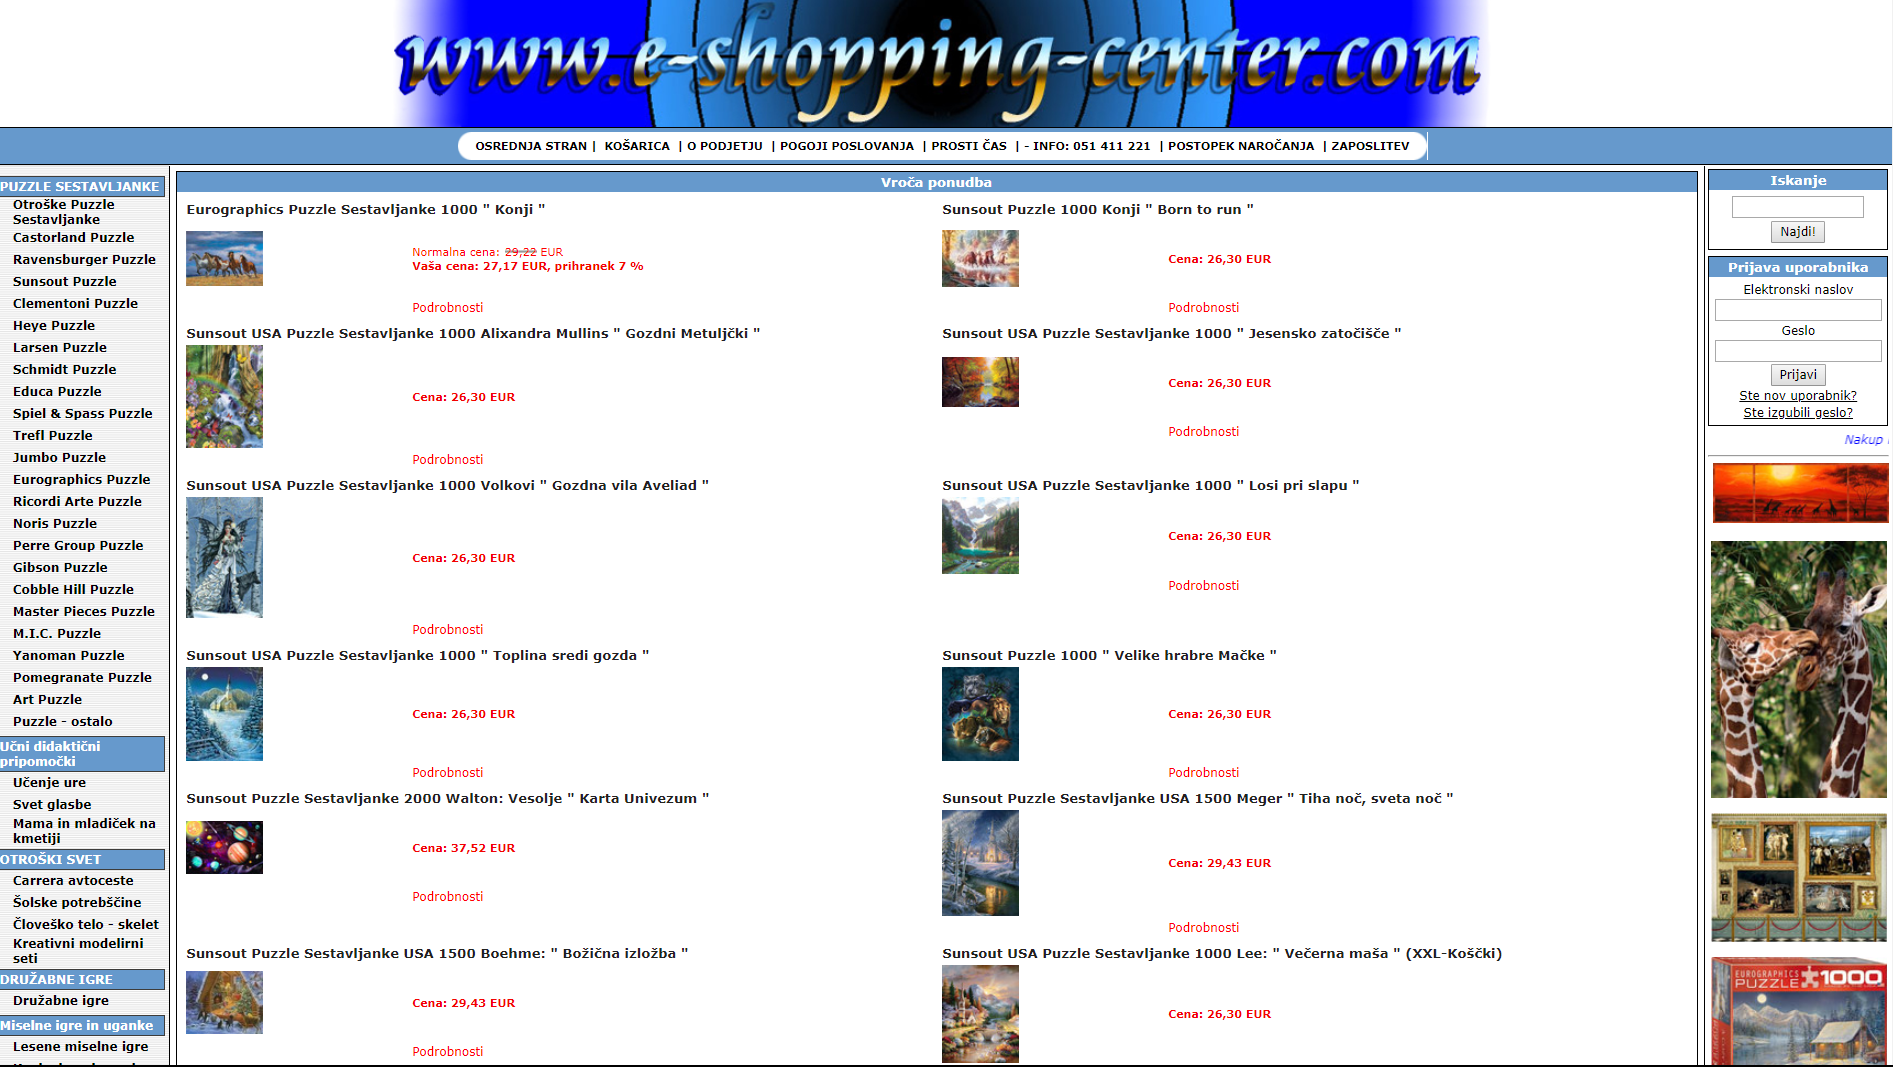 e-shopping-center.com/